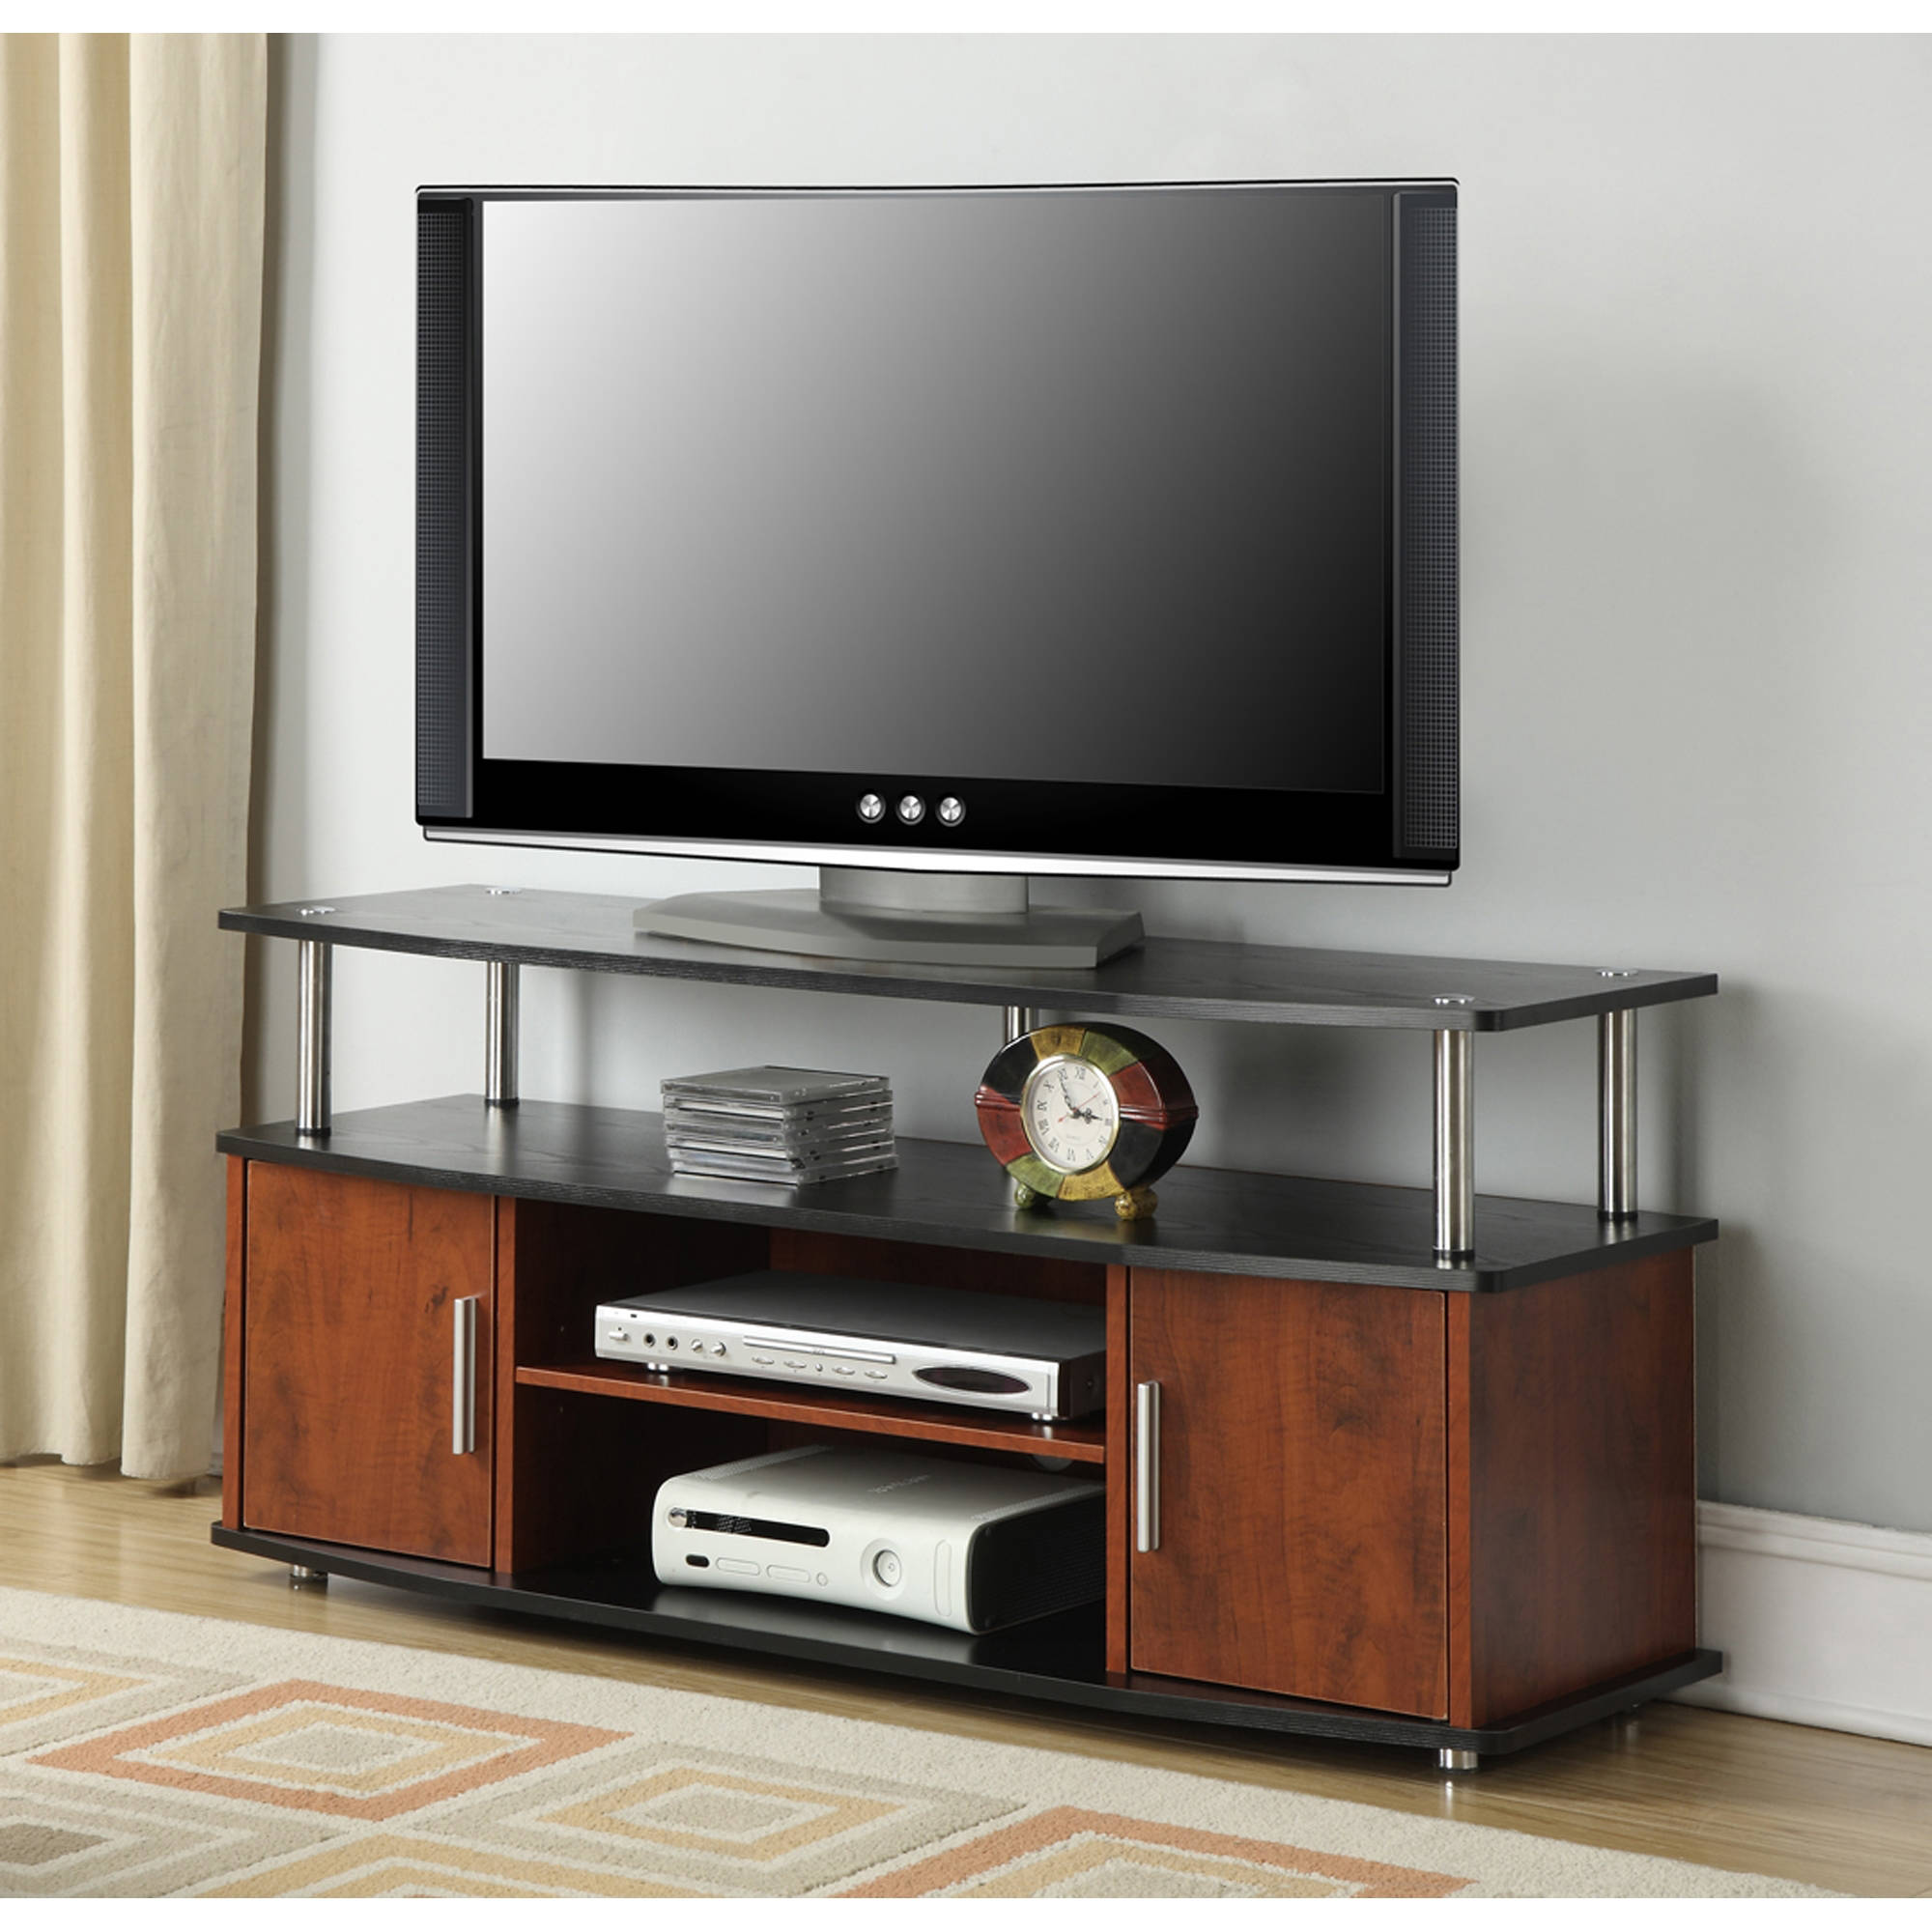 Convenience Concepts Designs2go Black Cherry Monterey Tv Stand For